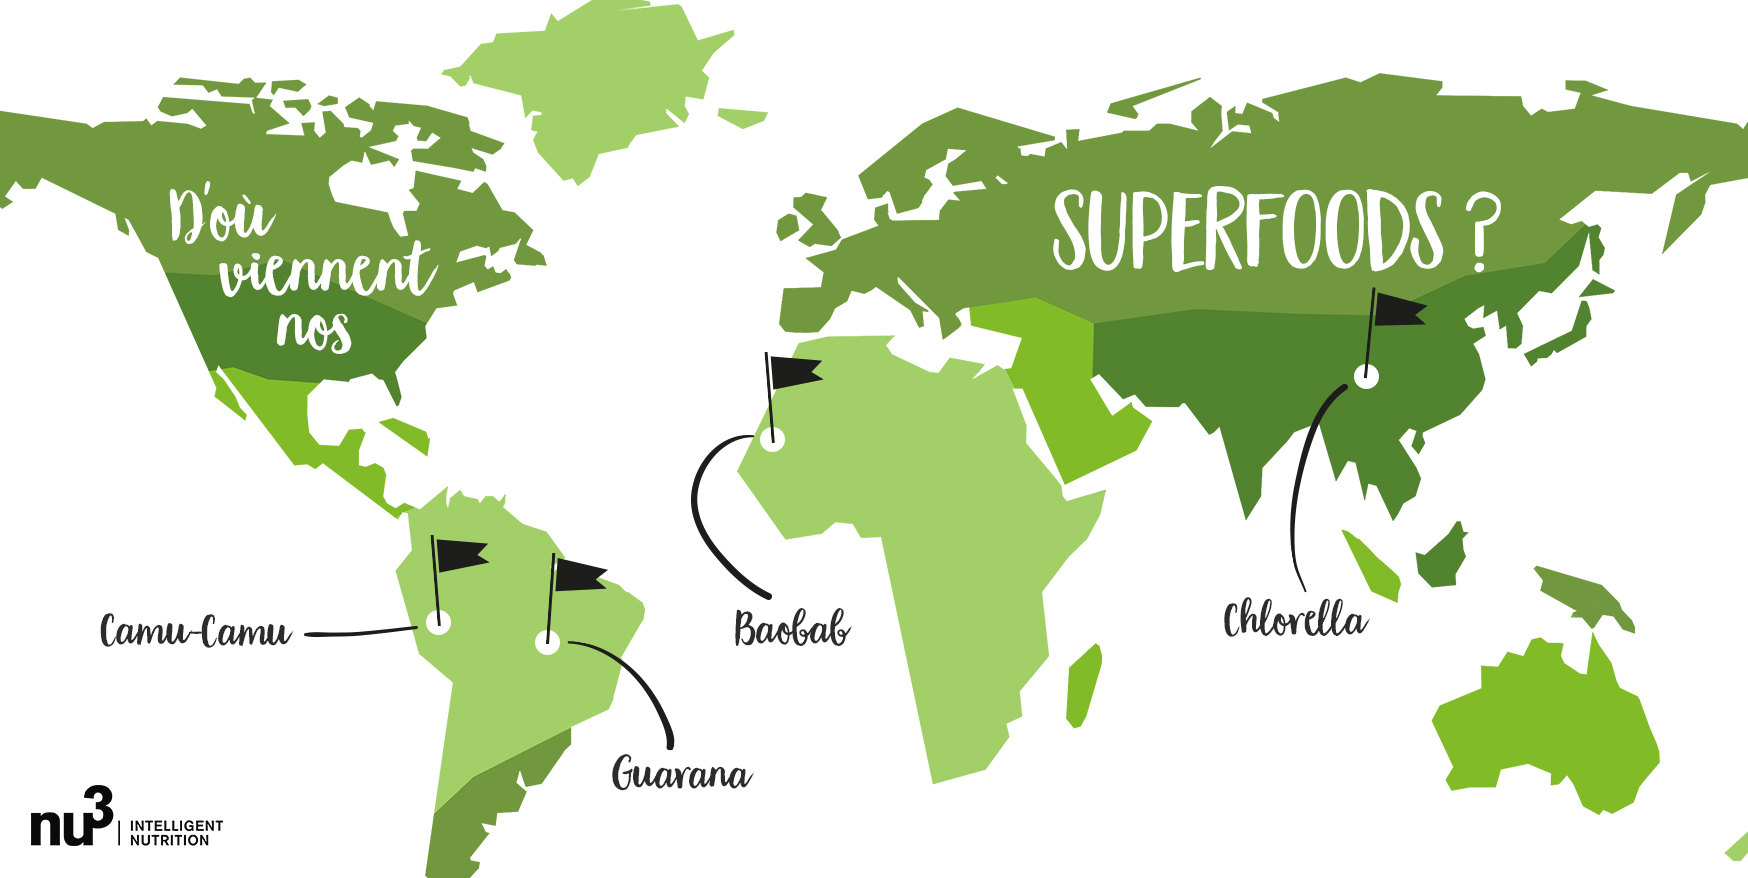 161122_superfood_map_fr_a6-2